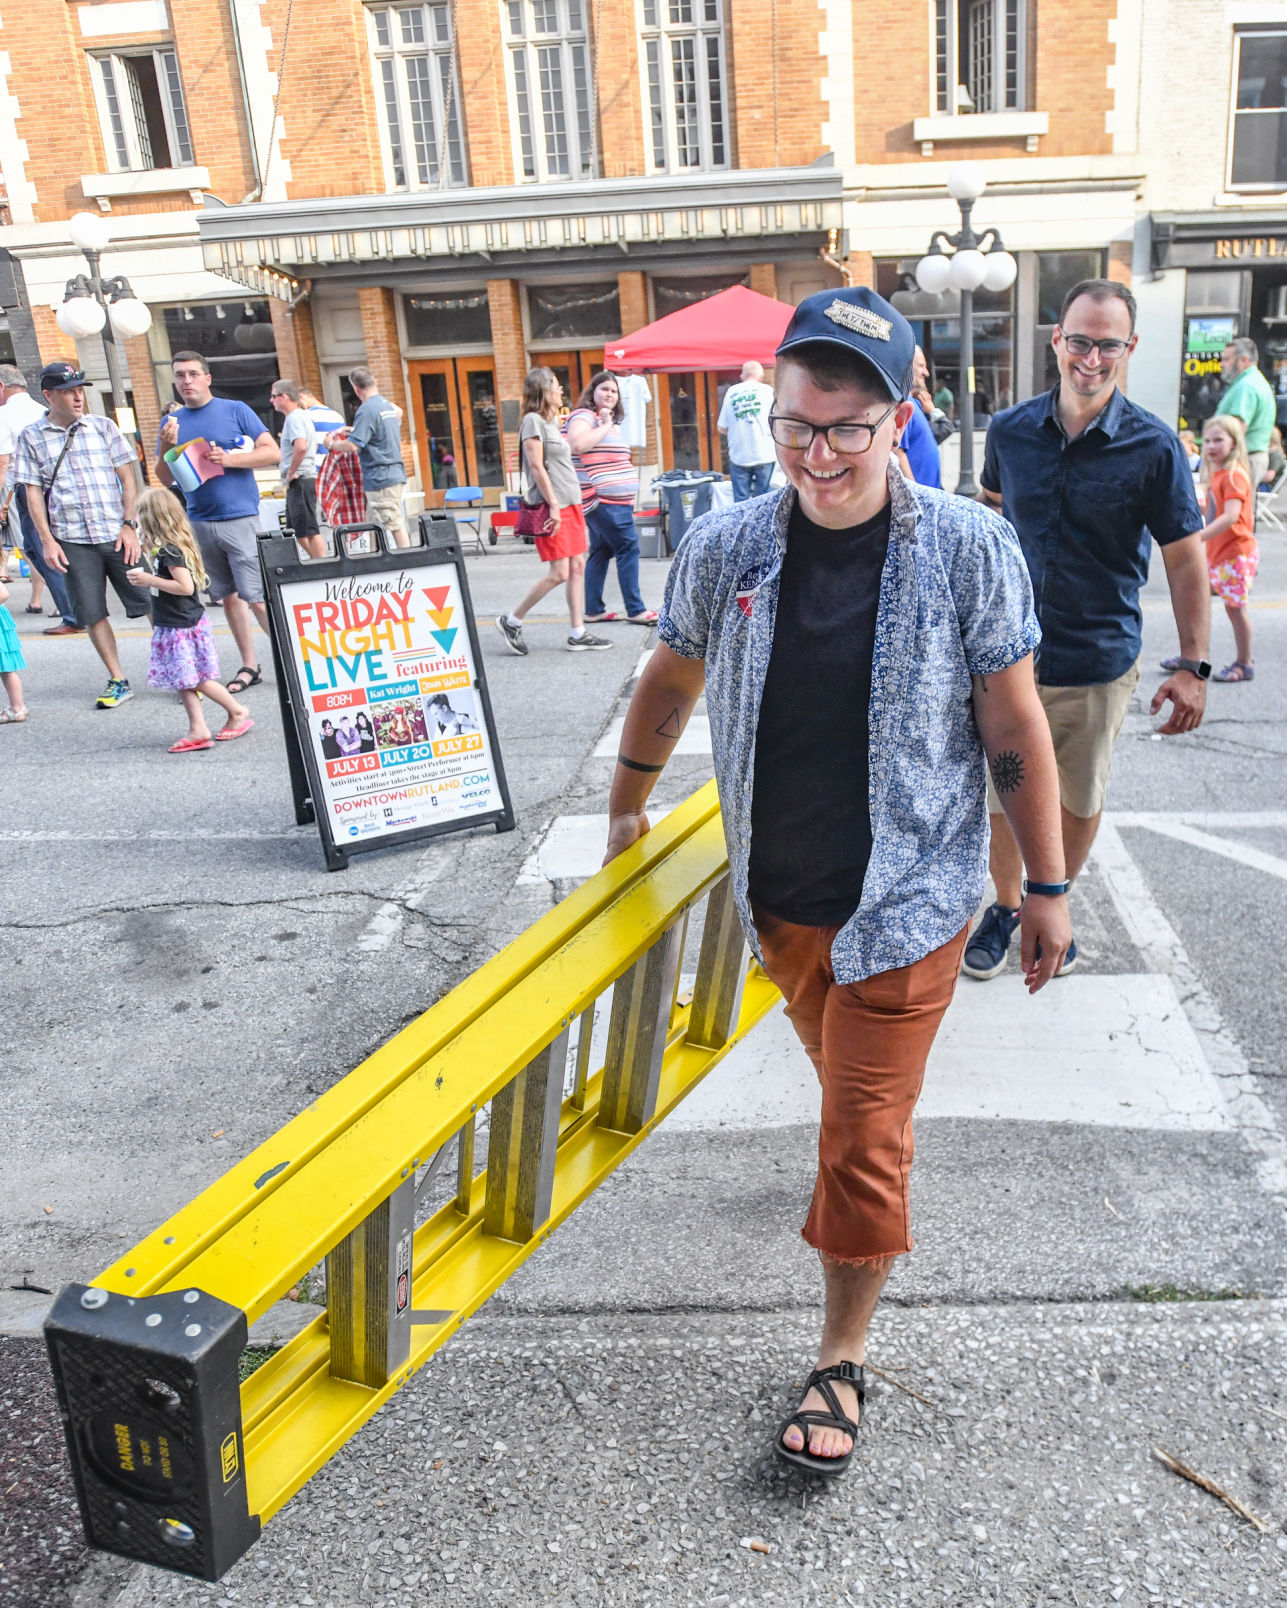 The Downtown Rutland Partnership's Streetscape Coordinator, Jess Novak, and Steve Peters, Executive Director, move a ladder to hang extension cords at Friday Night Live 2018.   Photo credit: Robert Layman / Rutland Herald